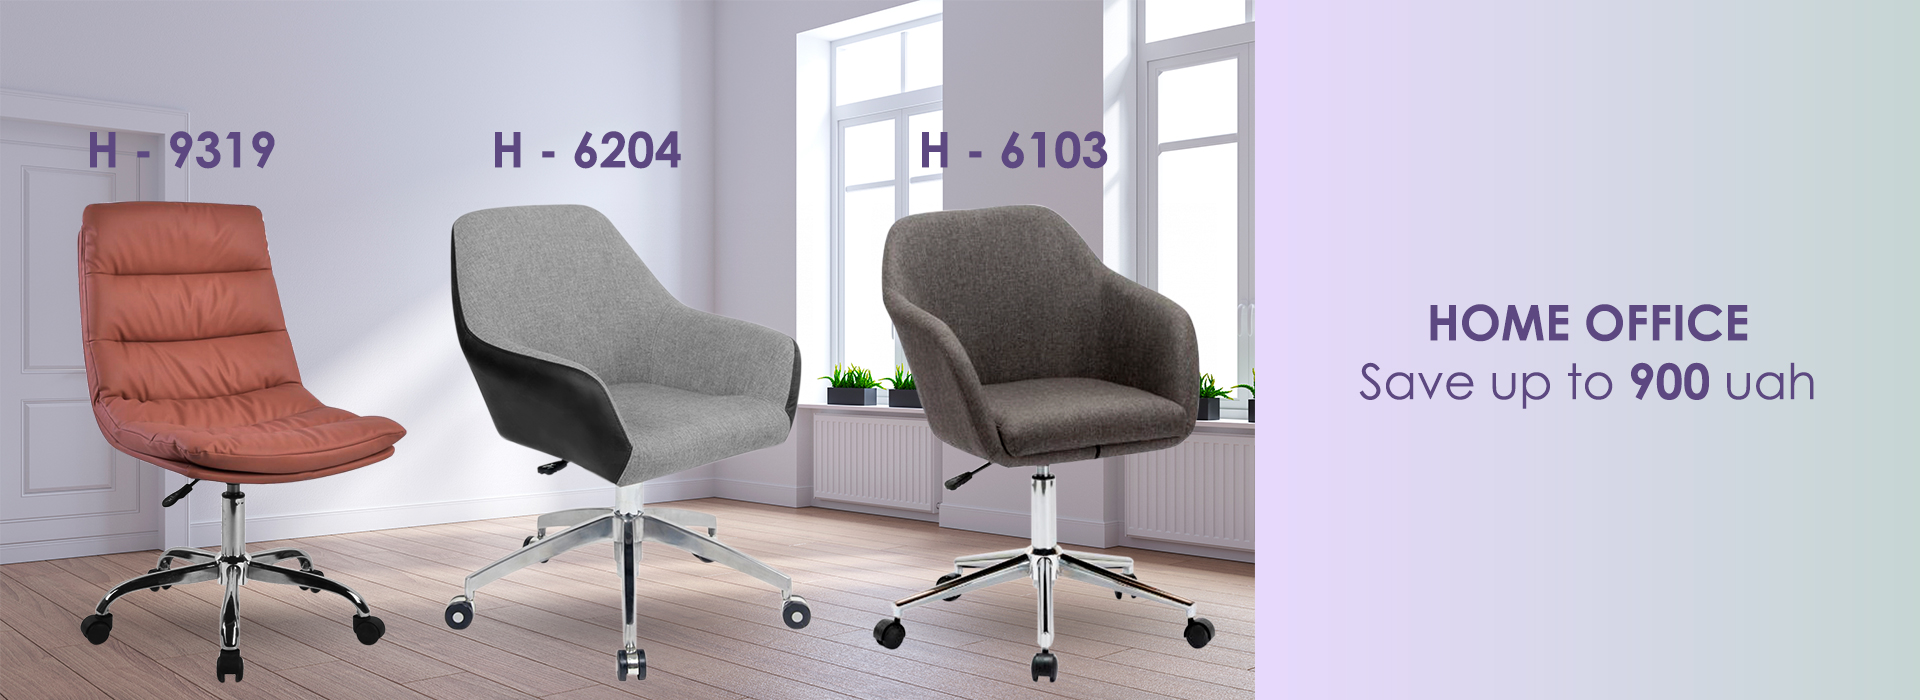 Stock! Pre-order for new Gt Racer office chairs!